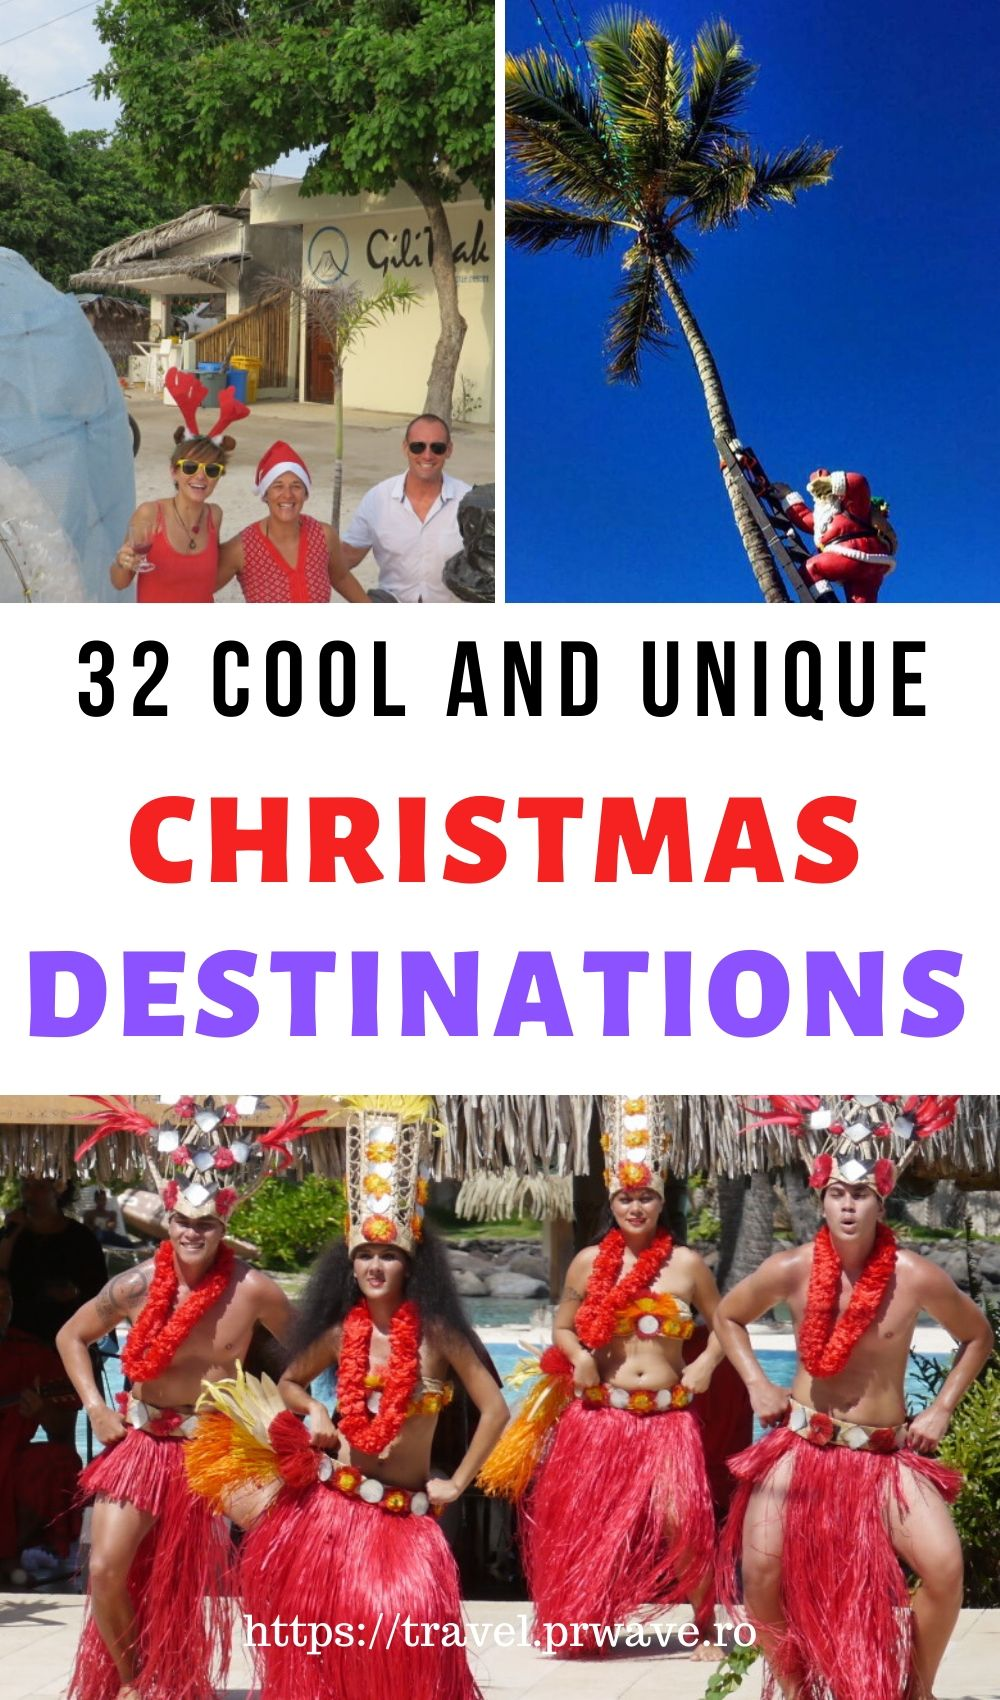 32 Cool and unique Christmas destinations across the globe. Discover alternative Christmas getaways from this article. Find out where to go for Christmas and sun, what cool Christmas traditions you can discover on your trips and start preparing your Christmas holiday with these recommendations. The best places to spend Christmas abroad in one place! Read the article now! #christmas #christmasdestinations #destinations #travel